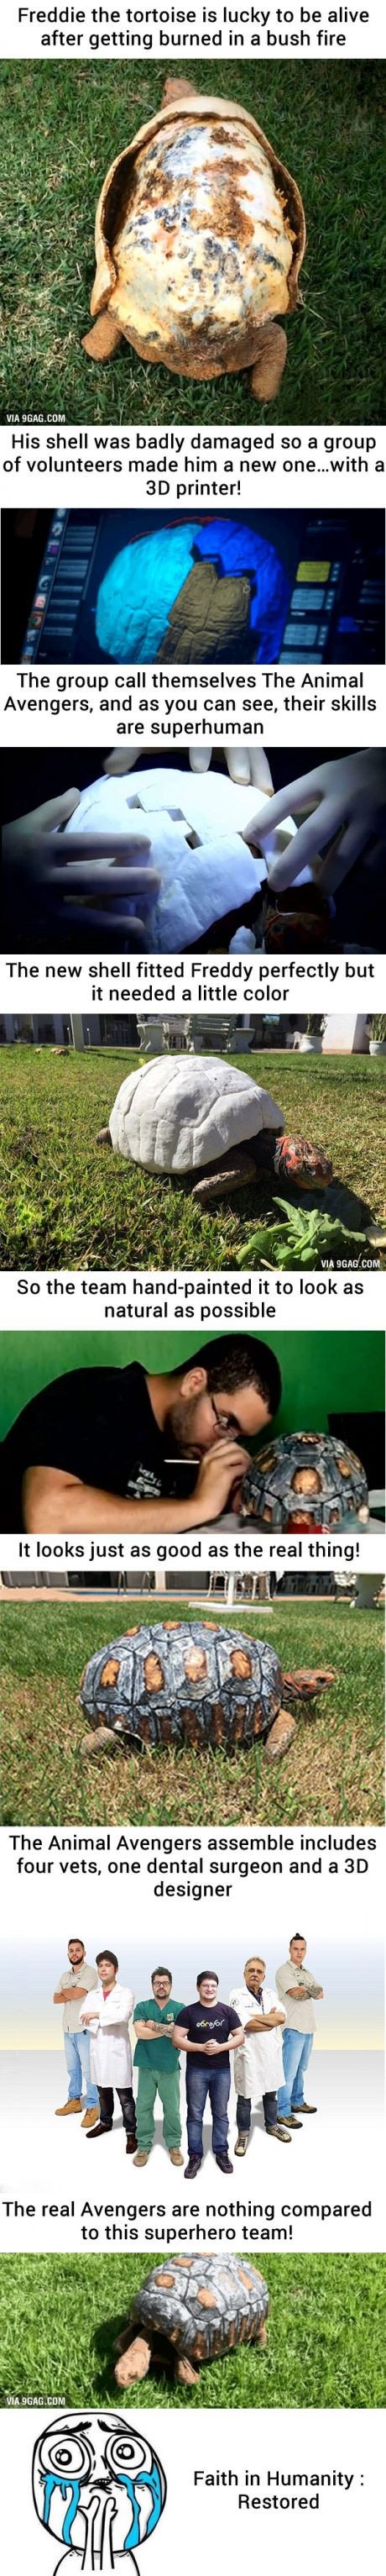 [Warning Strong Graphic] Injured Tortoise Receives World's First 3D Printed Shell